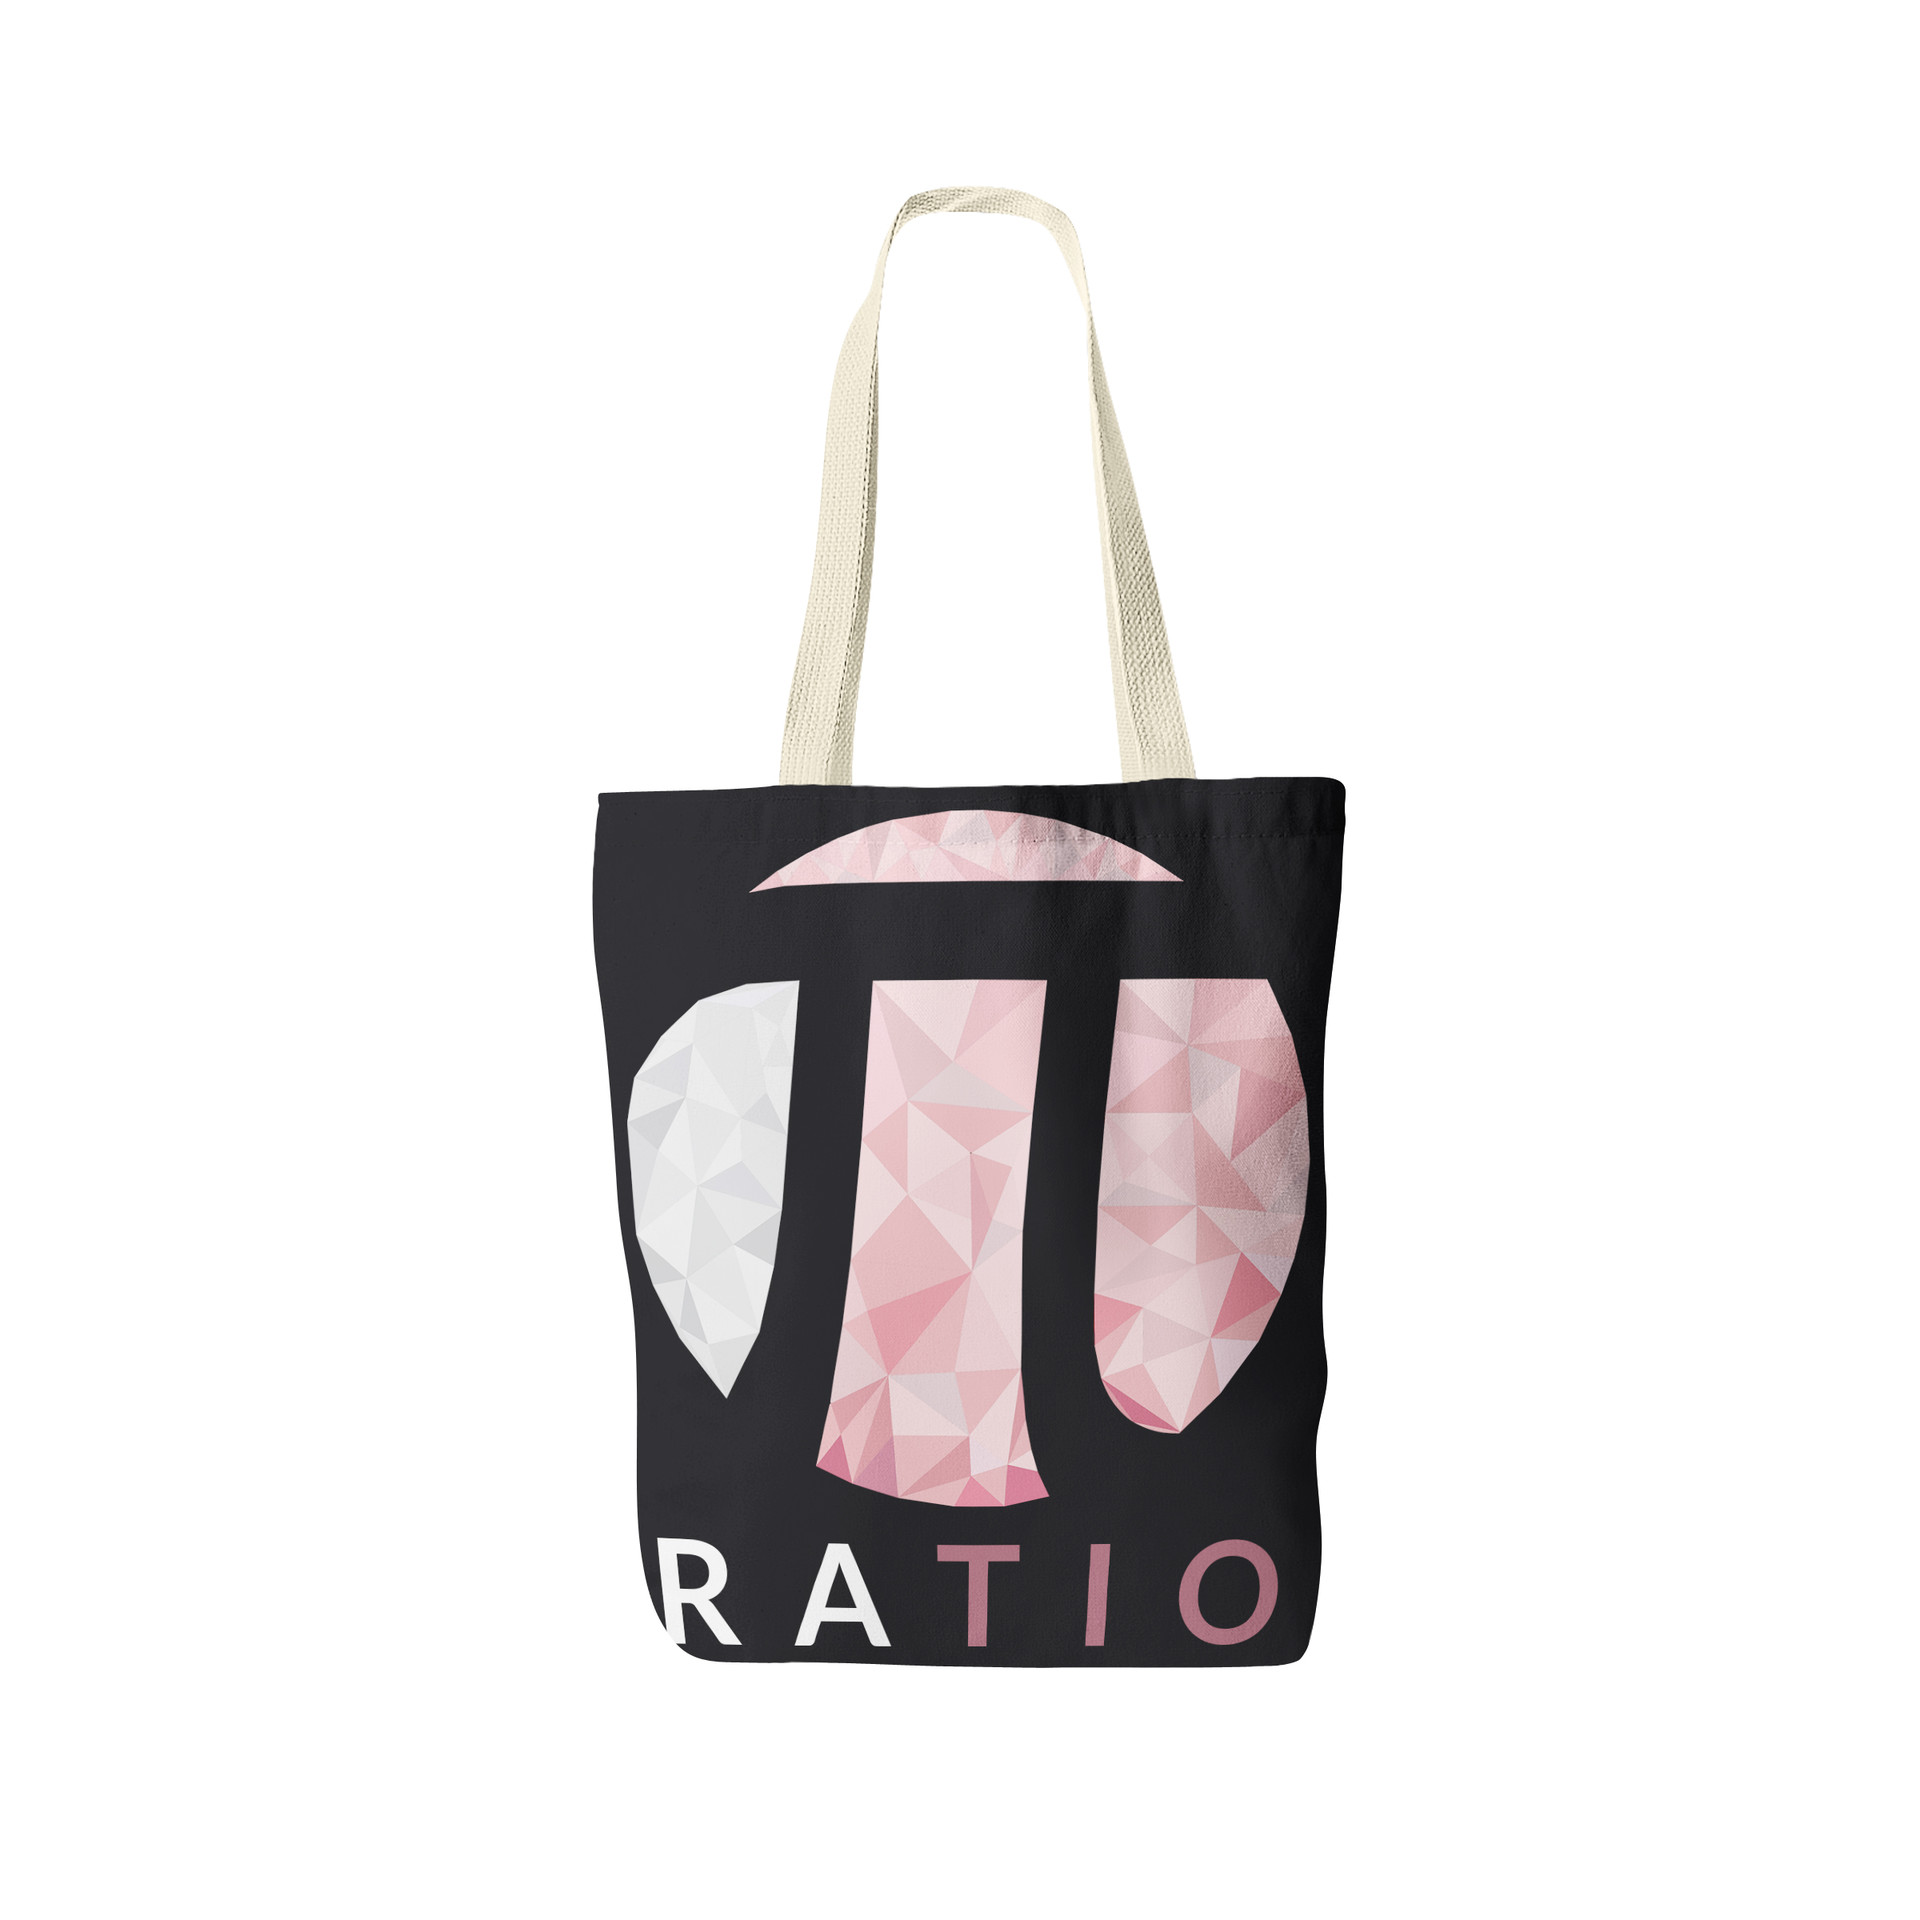 Jerry ubah ratio tote bag front view